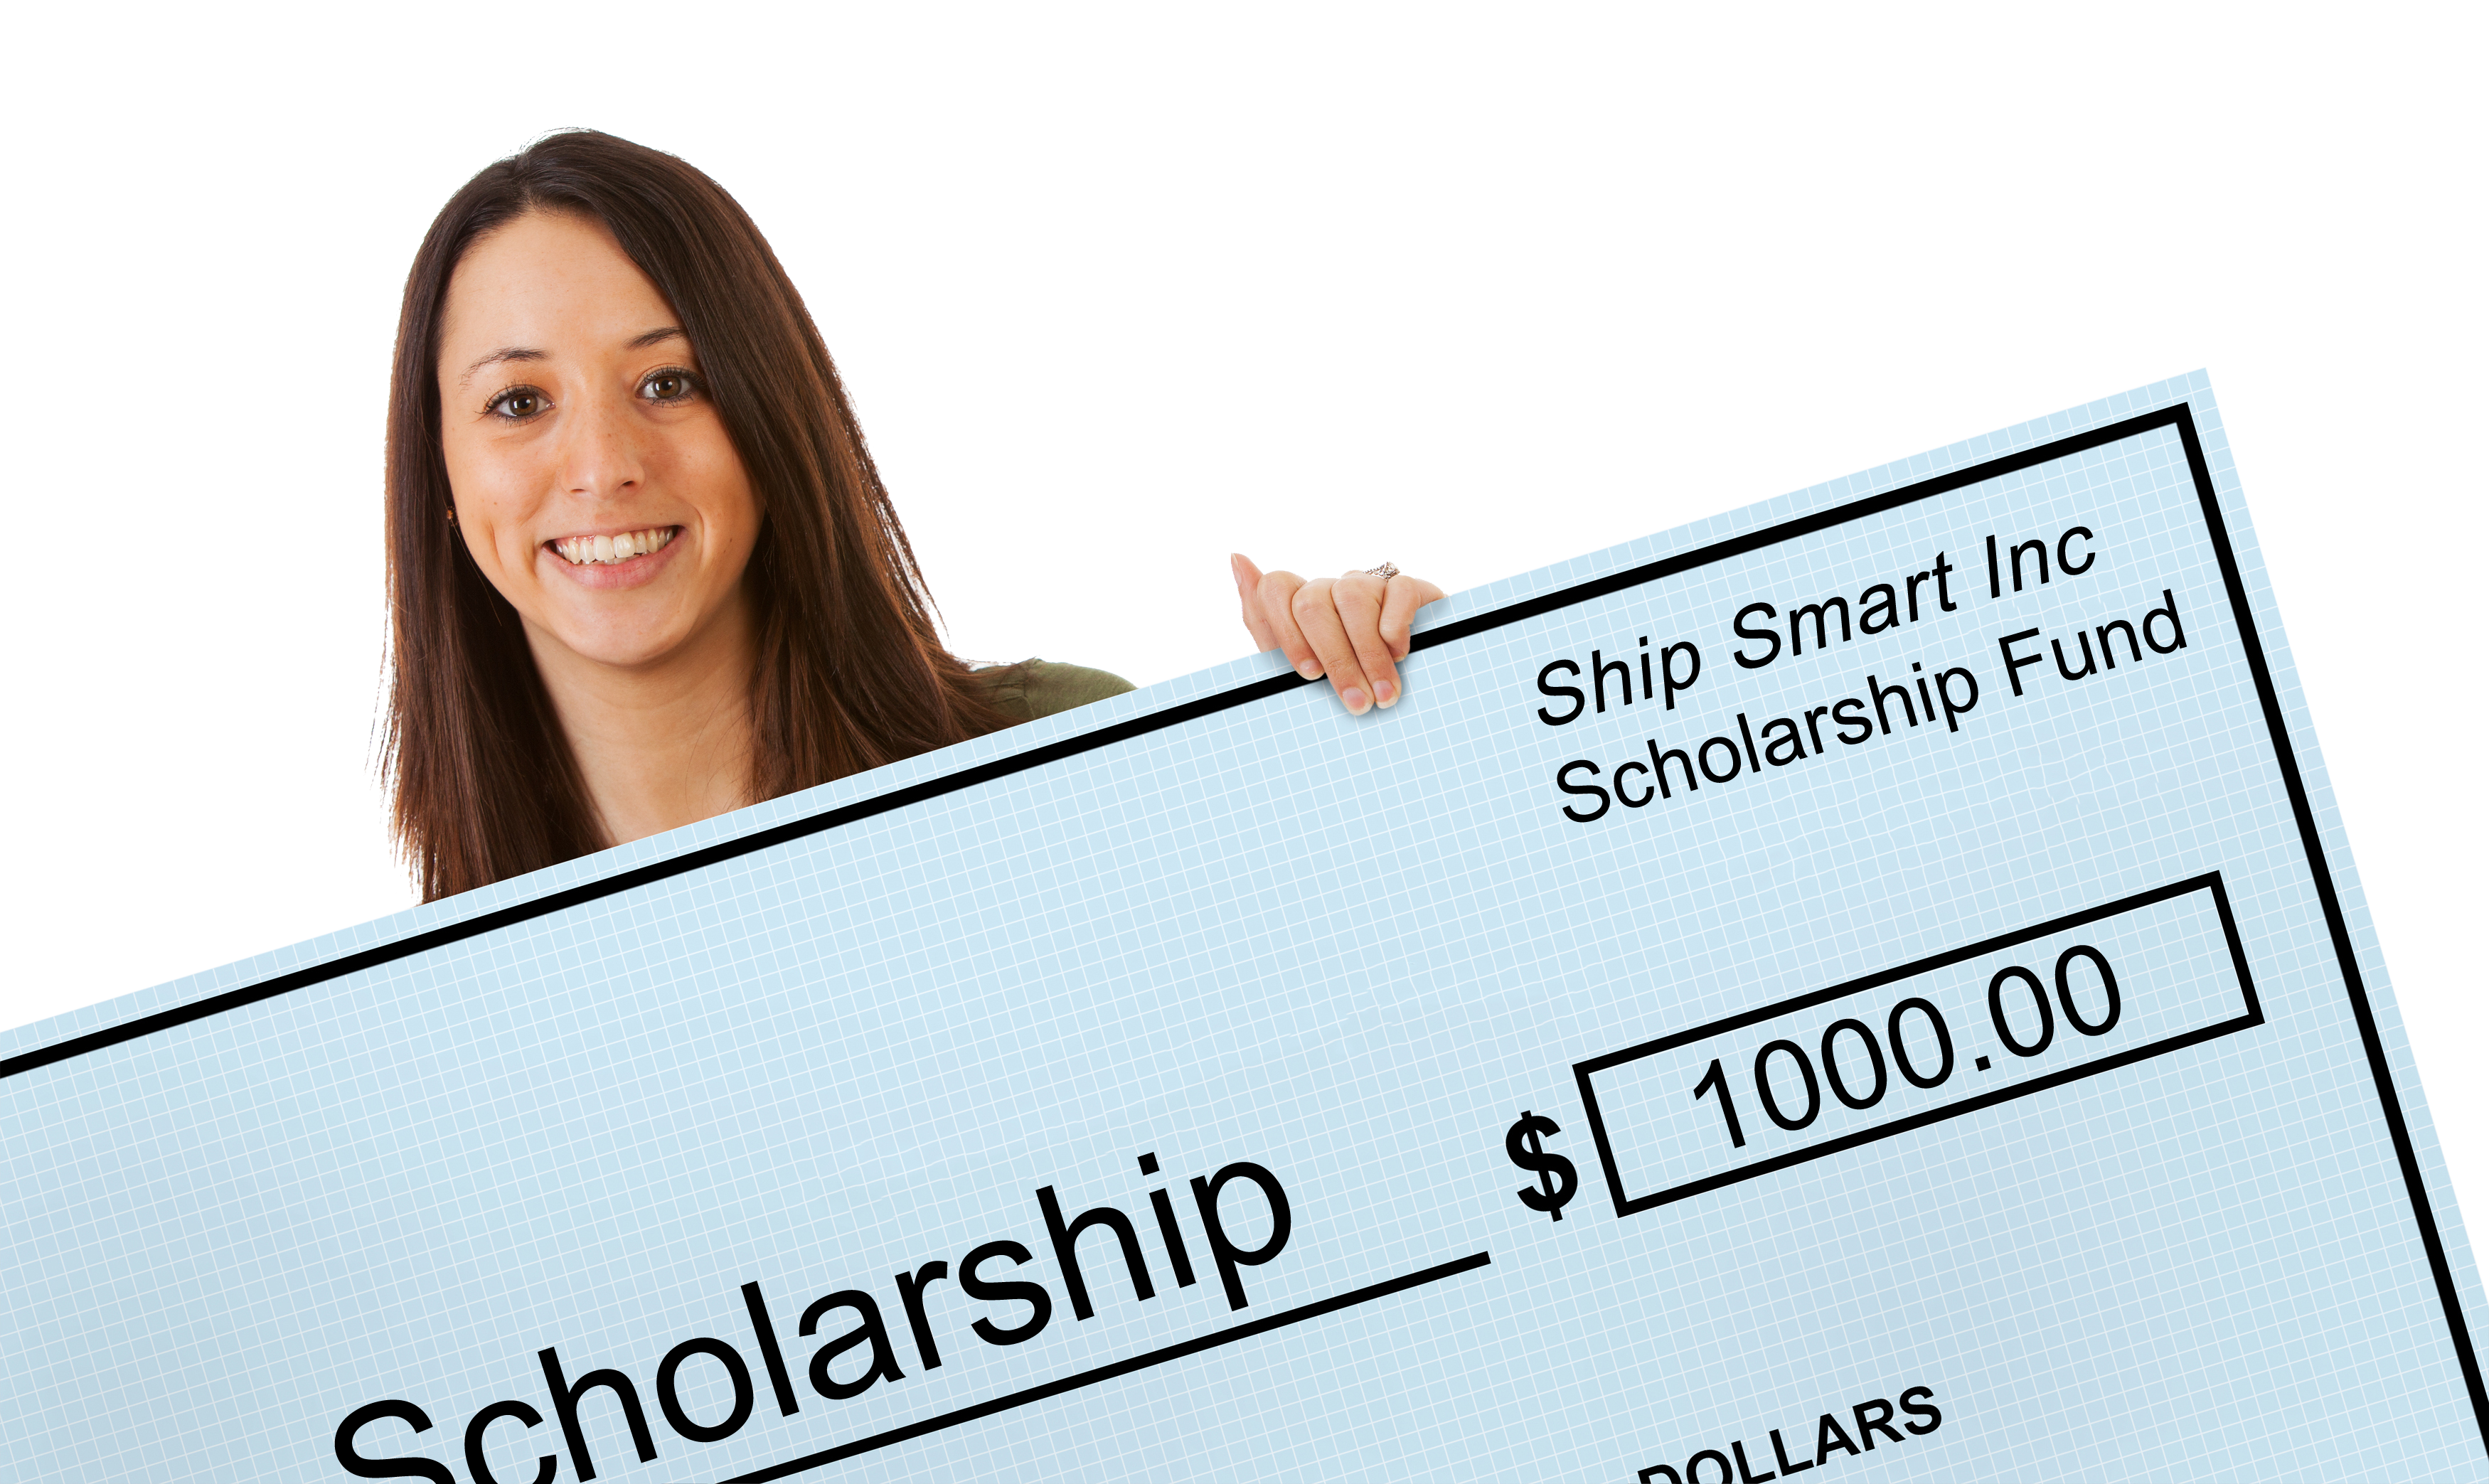 Congratulations To Savahnnah, our scholarship winner.